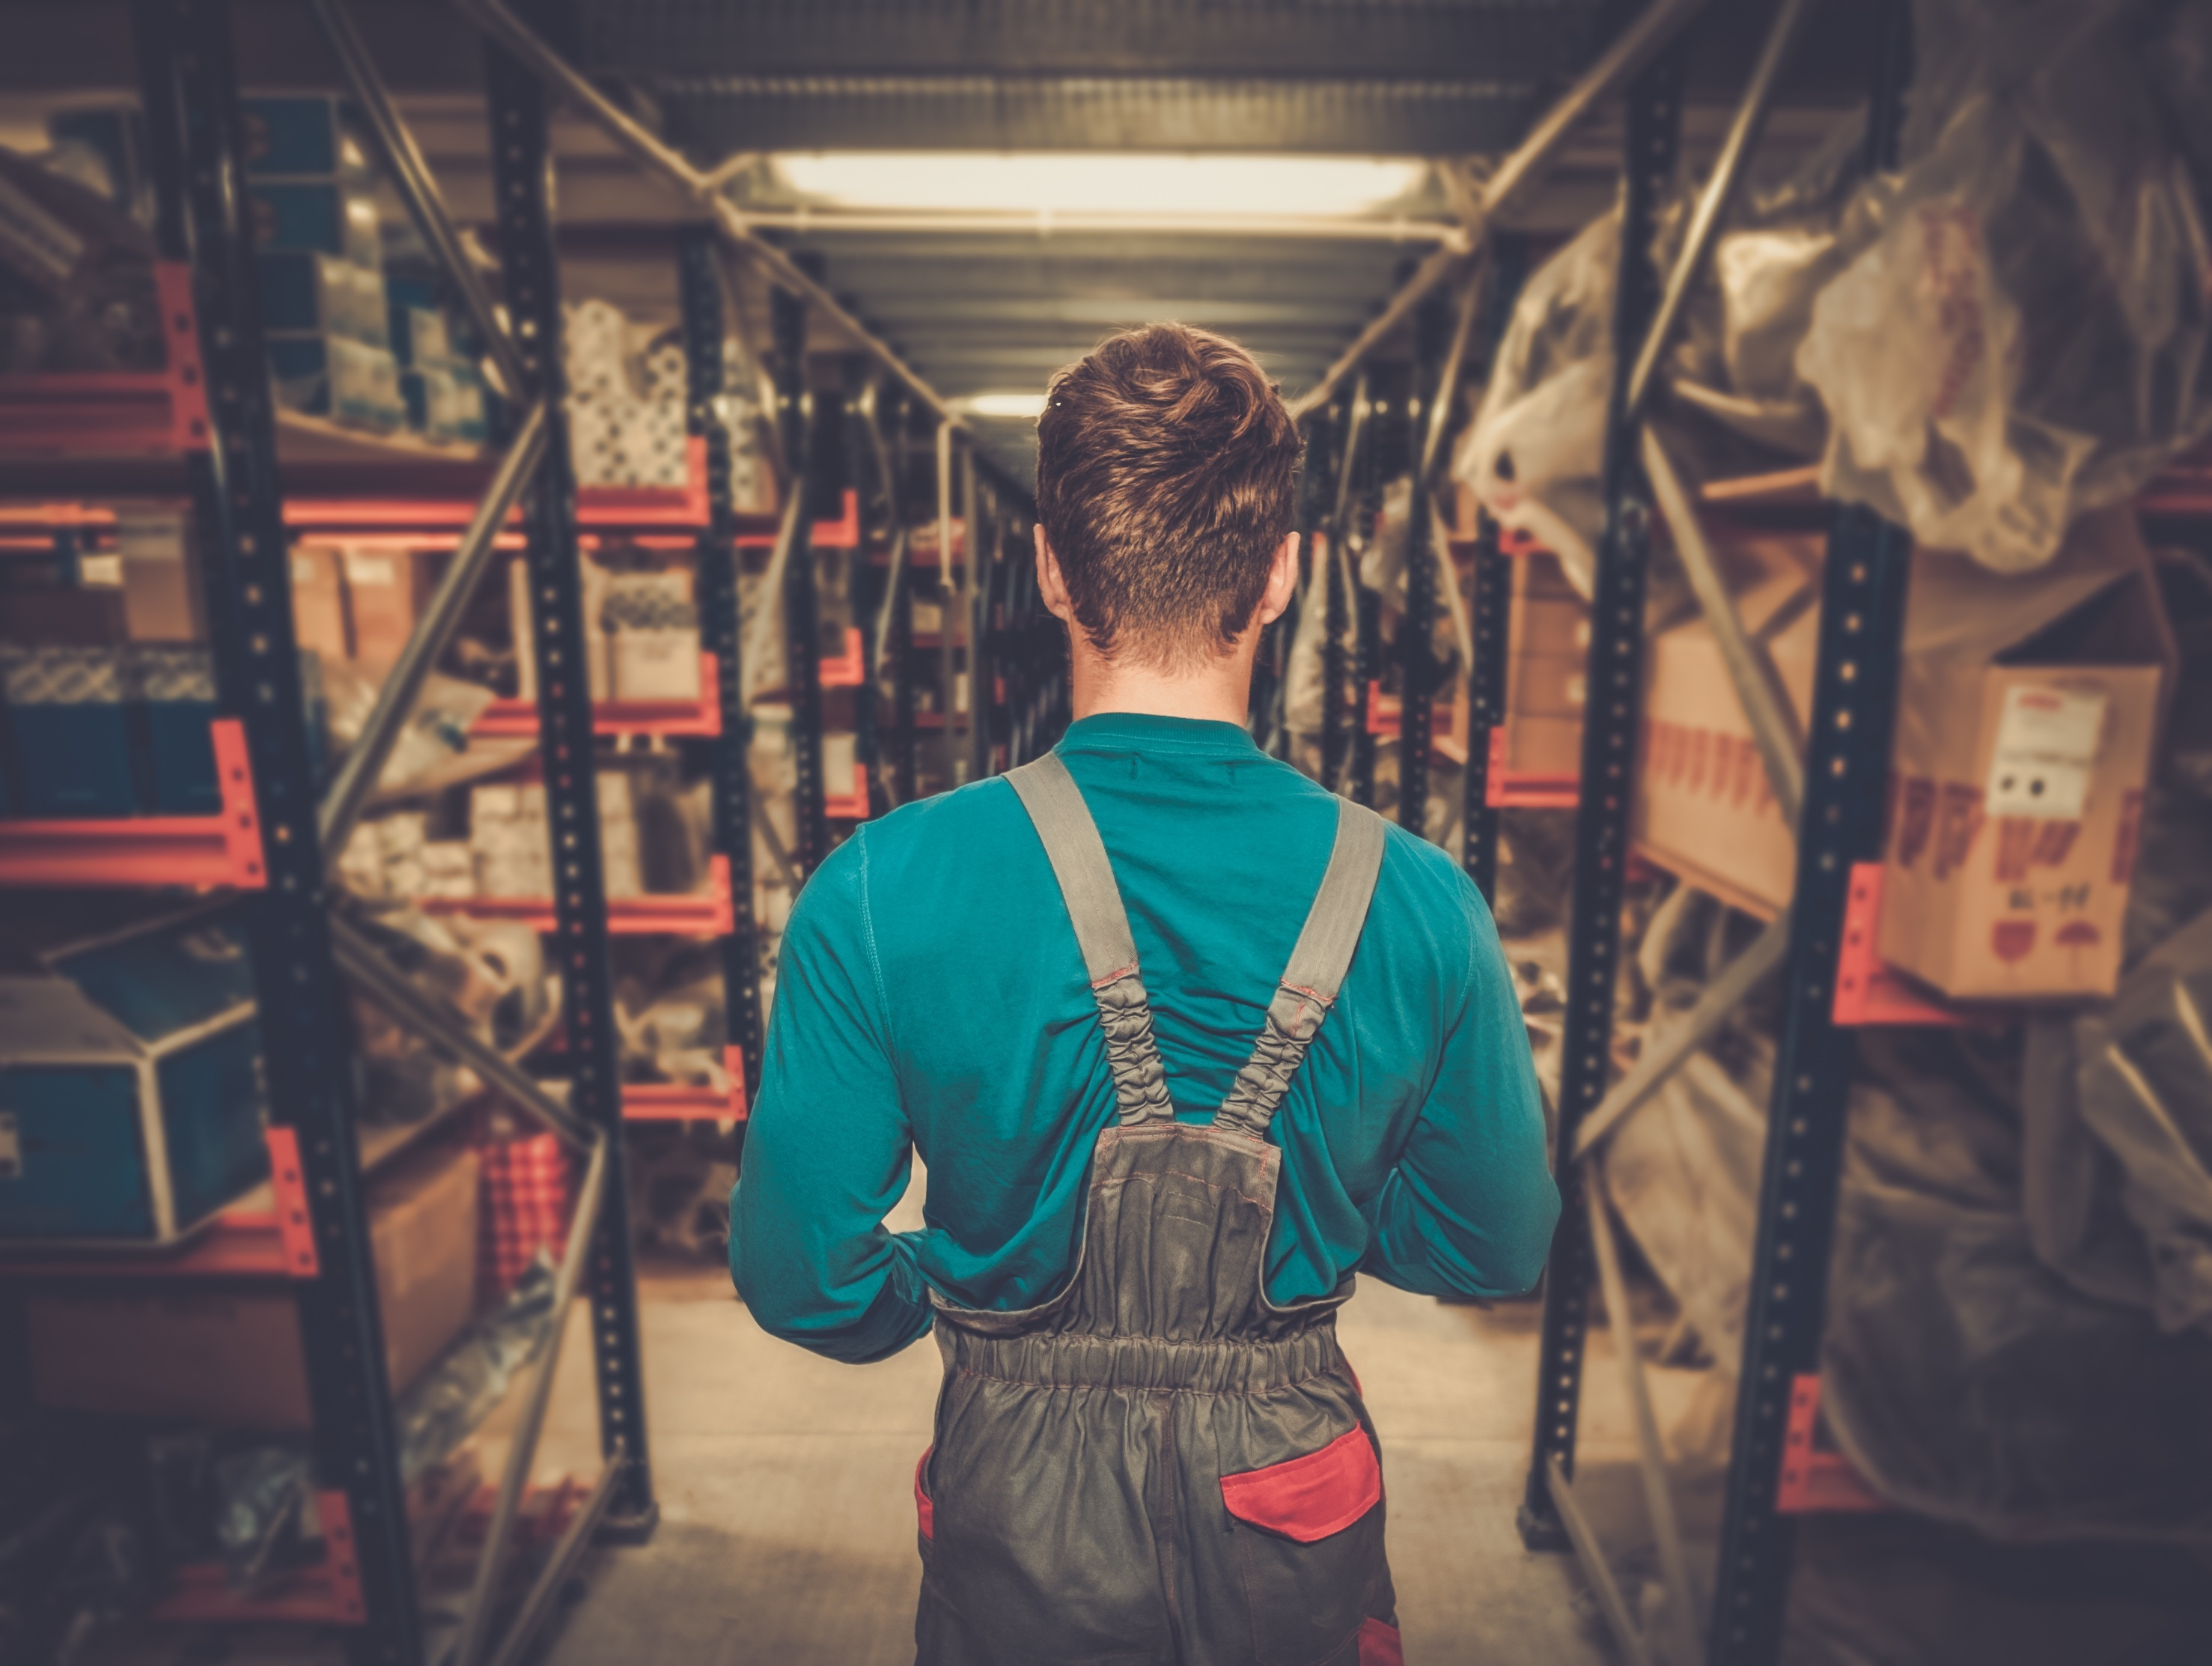 Worker in a warehouse full of shelves